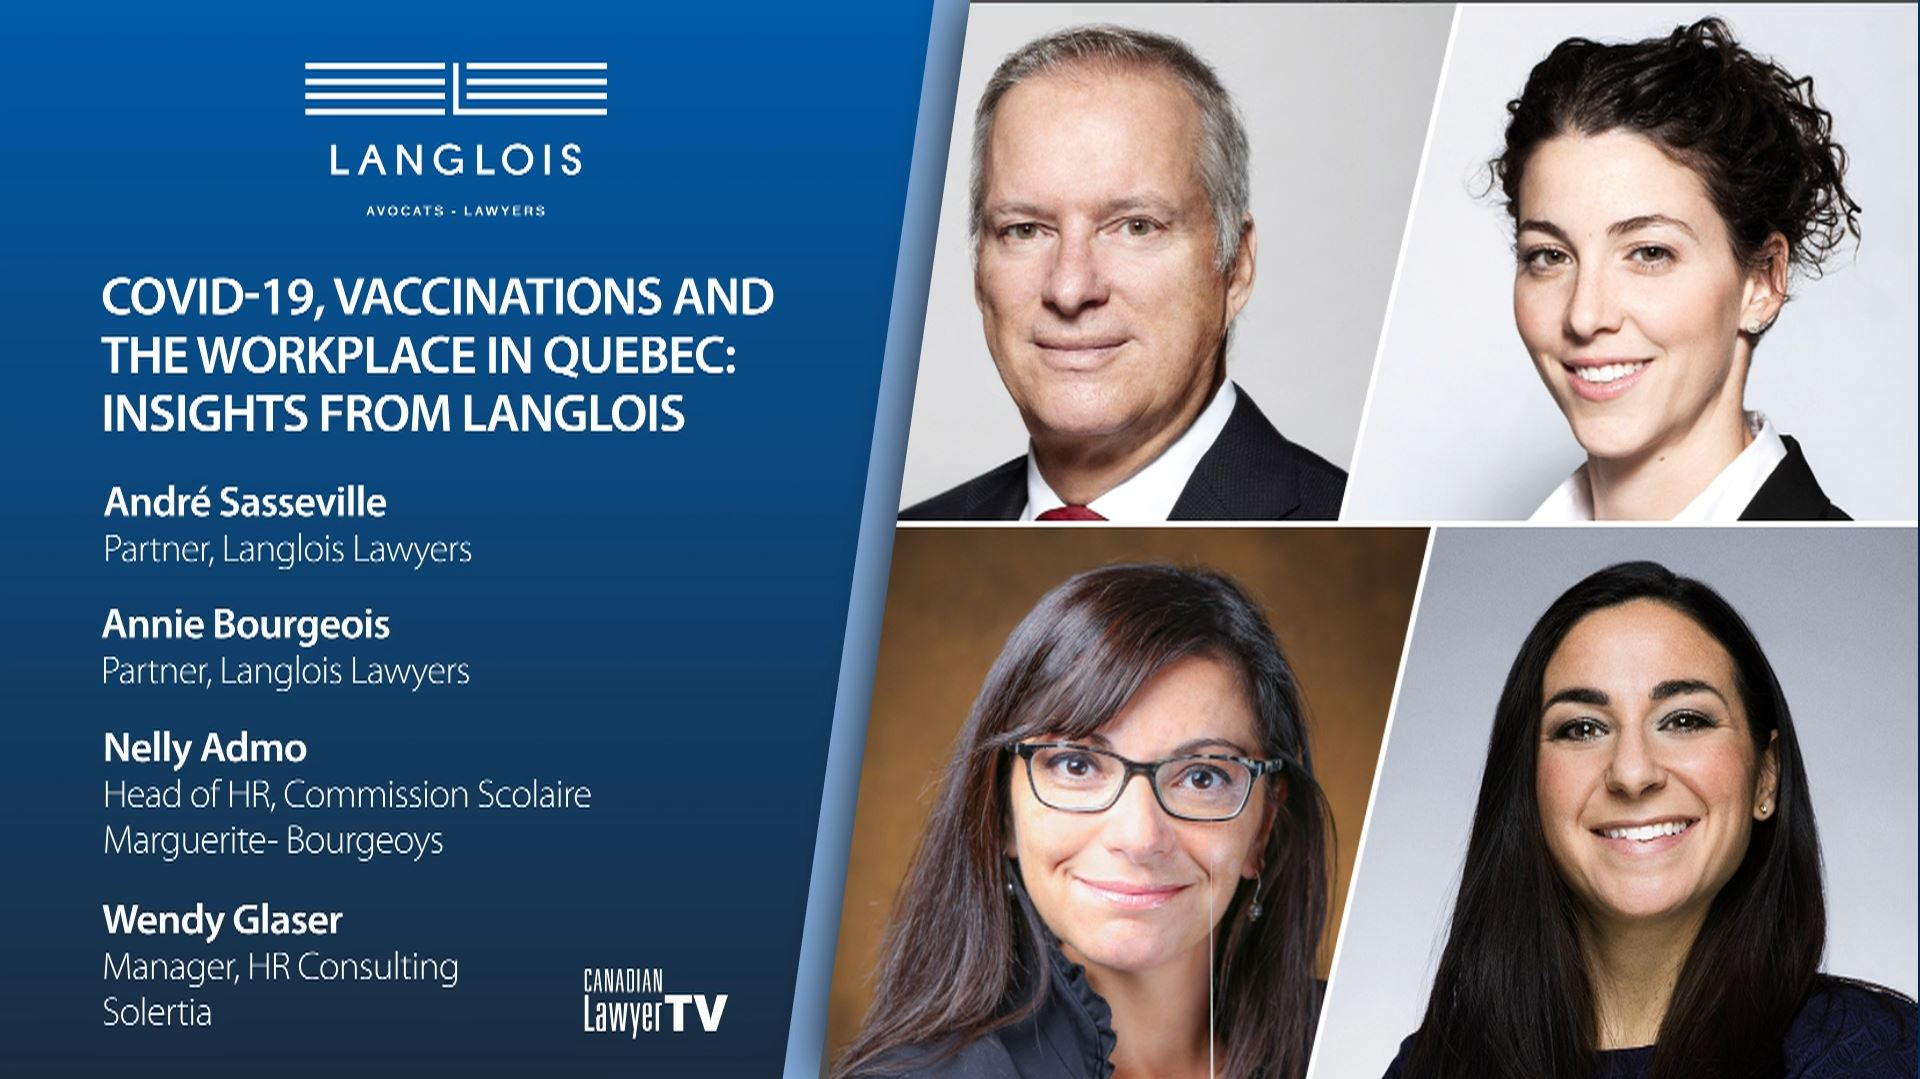 COVID-19, Vaccinations and the workplace in Quebec: Insights from Langlois